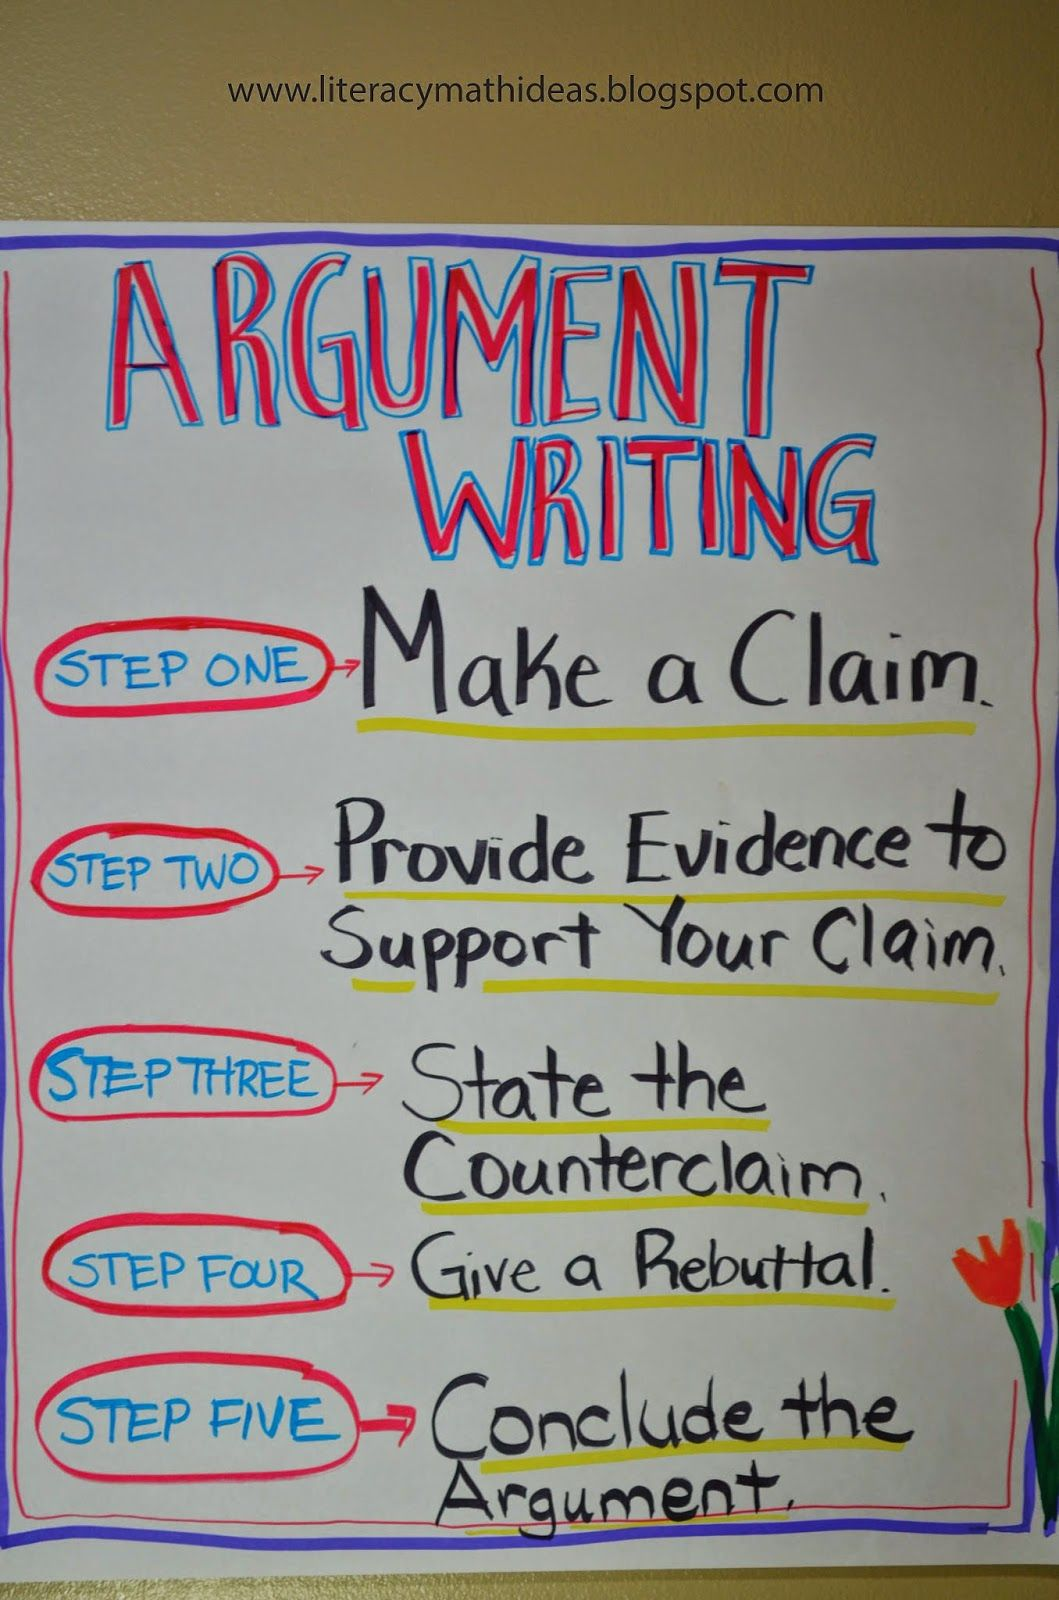 an introduction to argumentative writing language research literacy math ideas argument writing middot teaching argument writingteaching argumentative writingargumentative